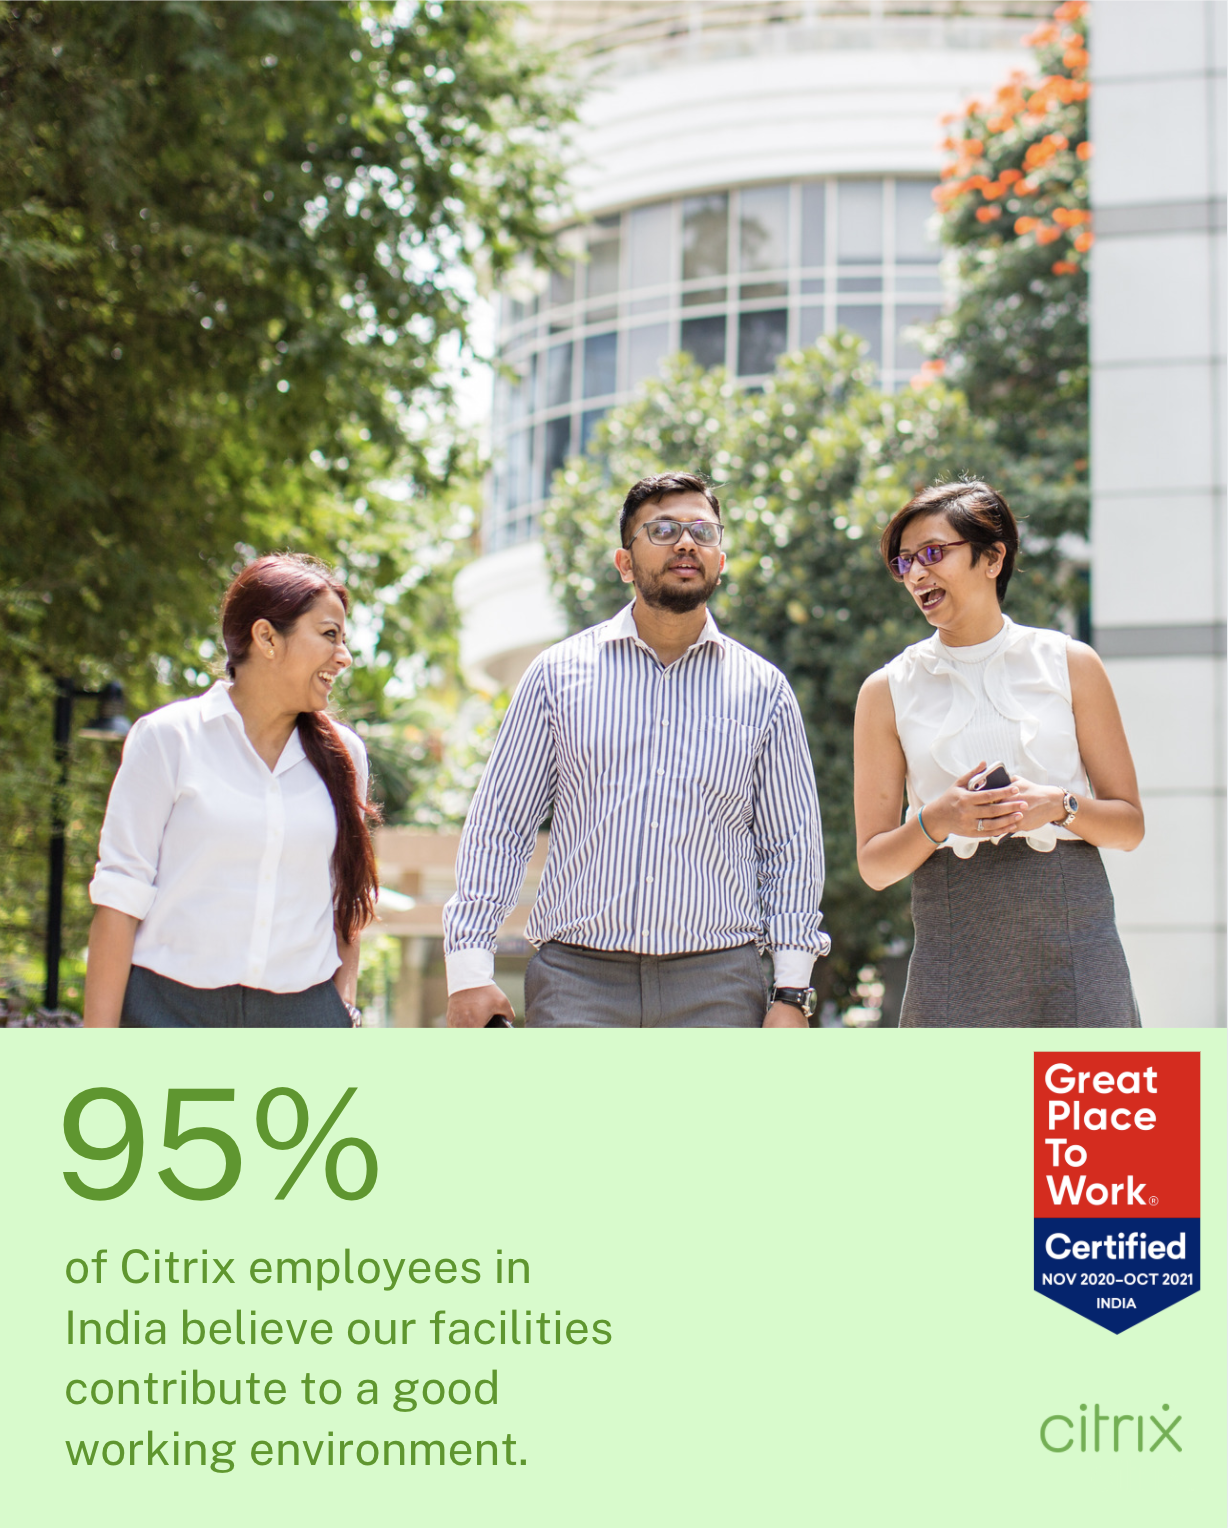 95% of Citrix employees in India believe our facilities contribute to a good working environment